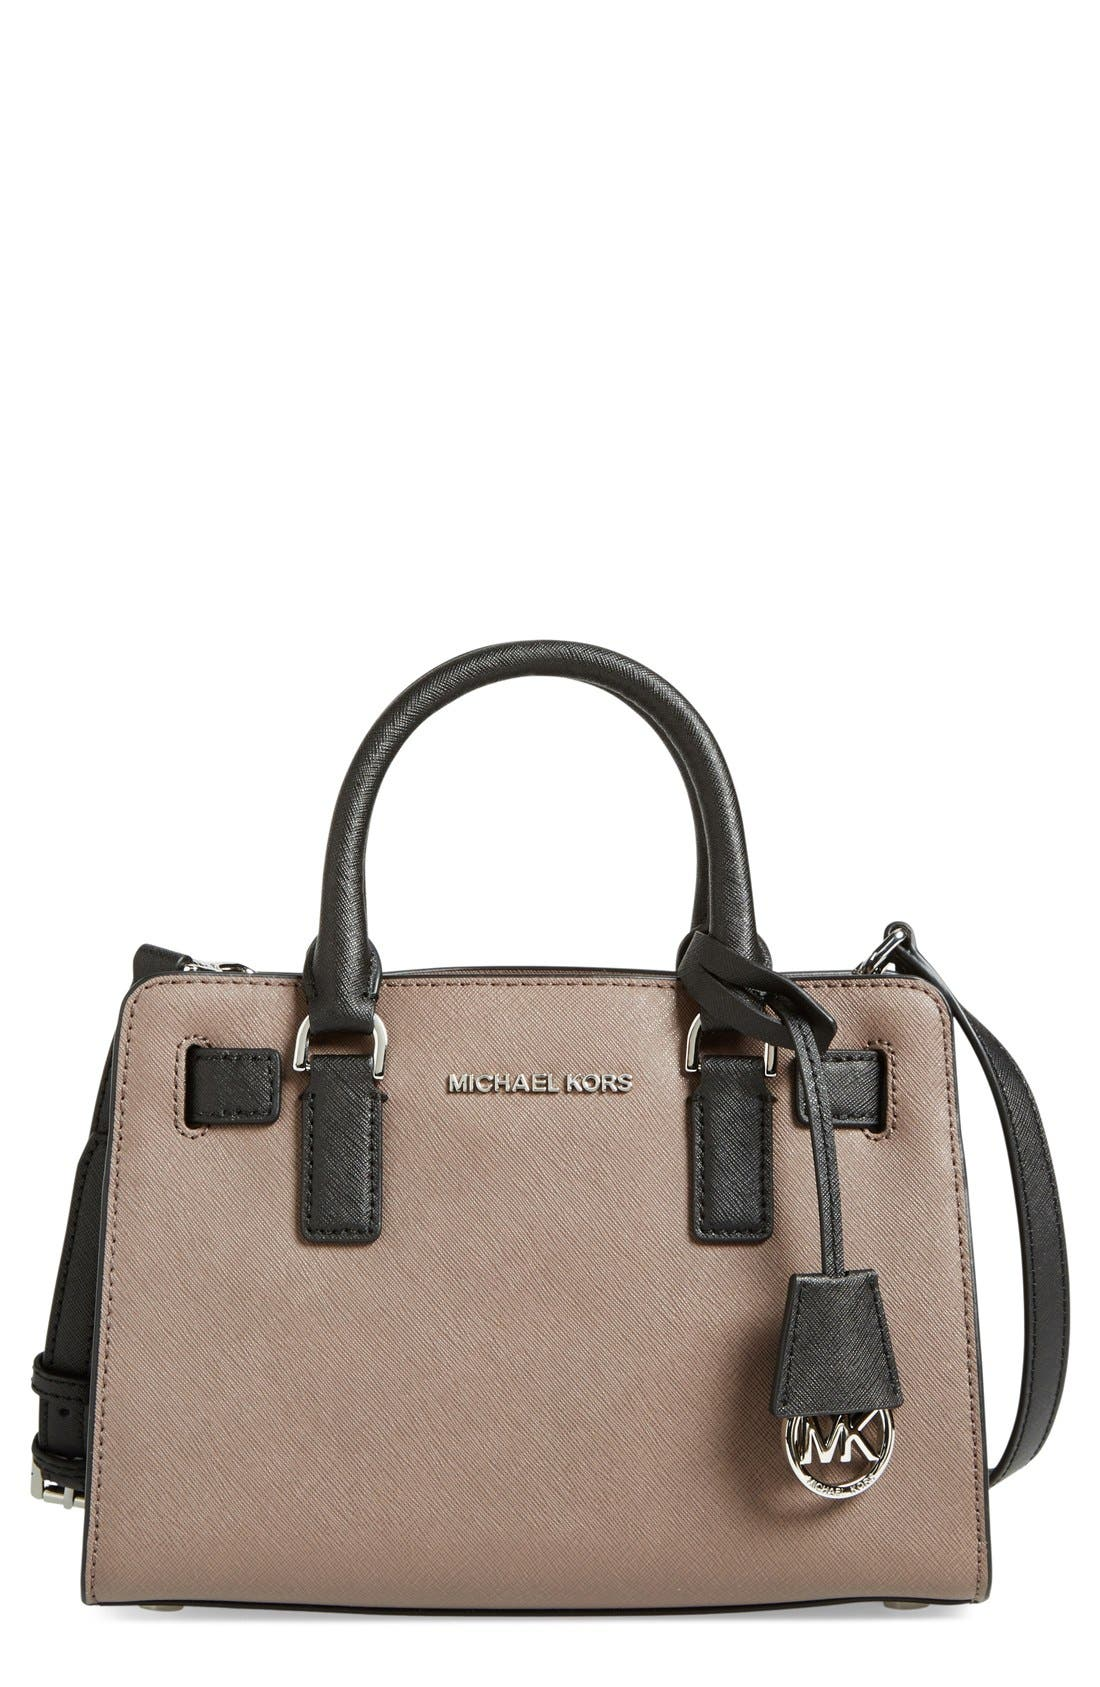 Alternate Image 1 Selected - MICHAEL Michael Kors 'Small' Bicolor Saffiano Leather Satchel